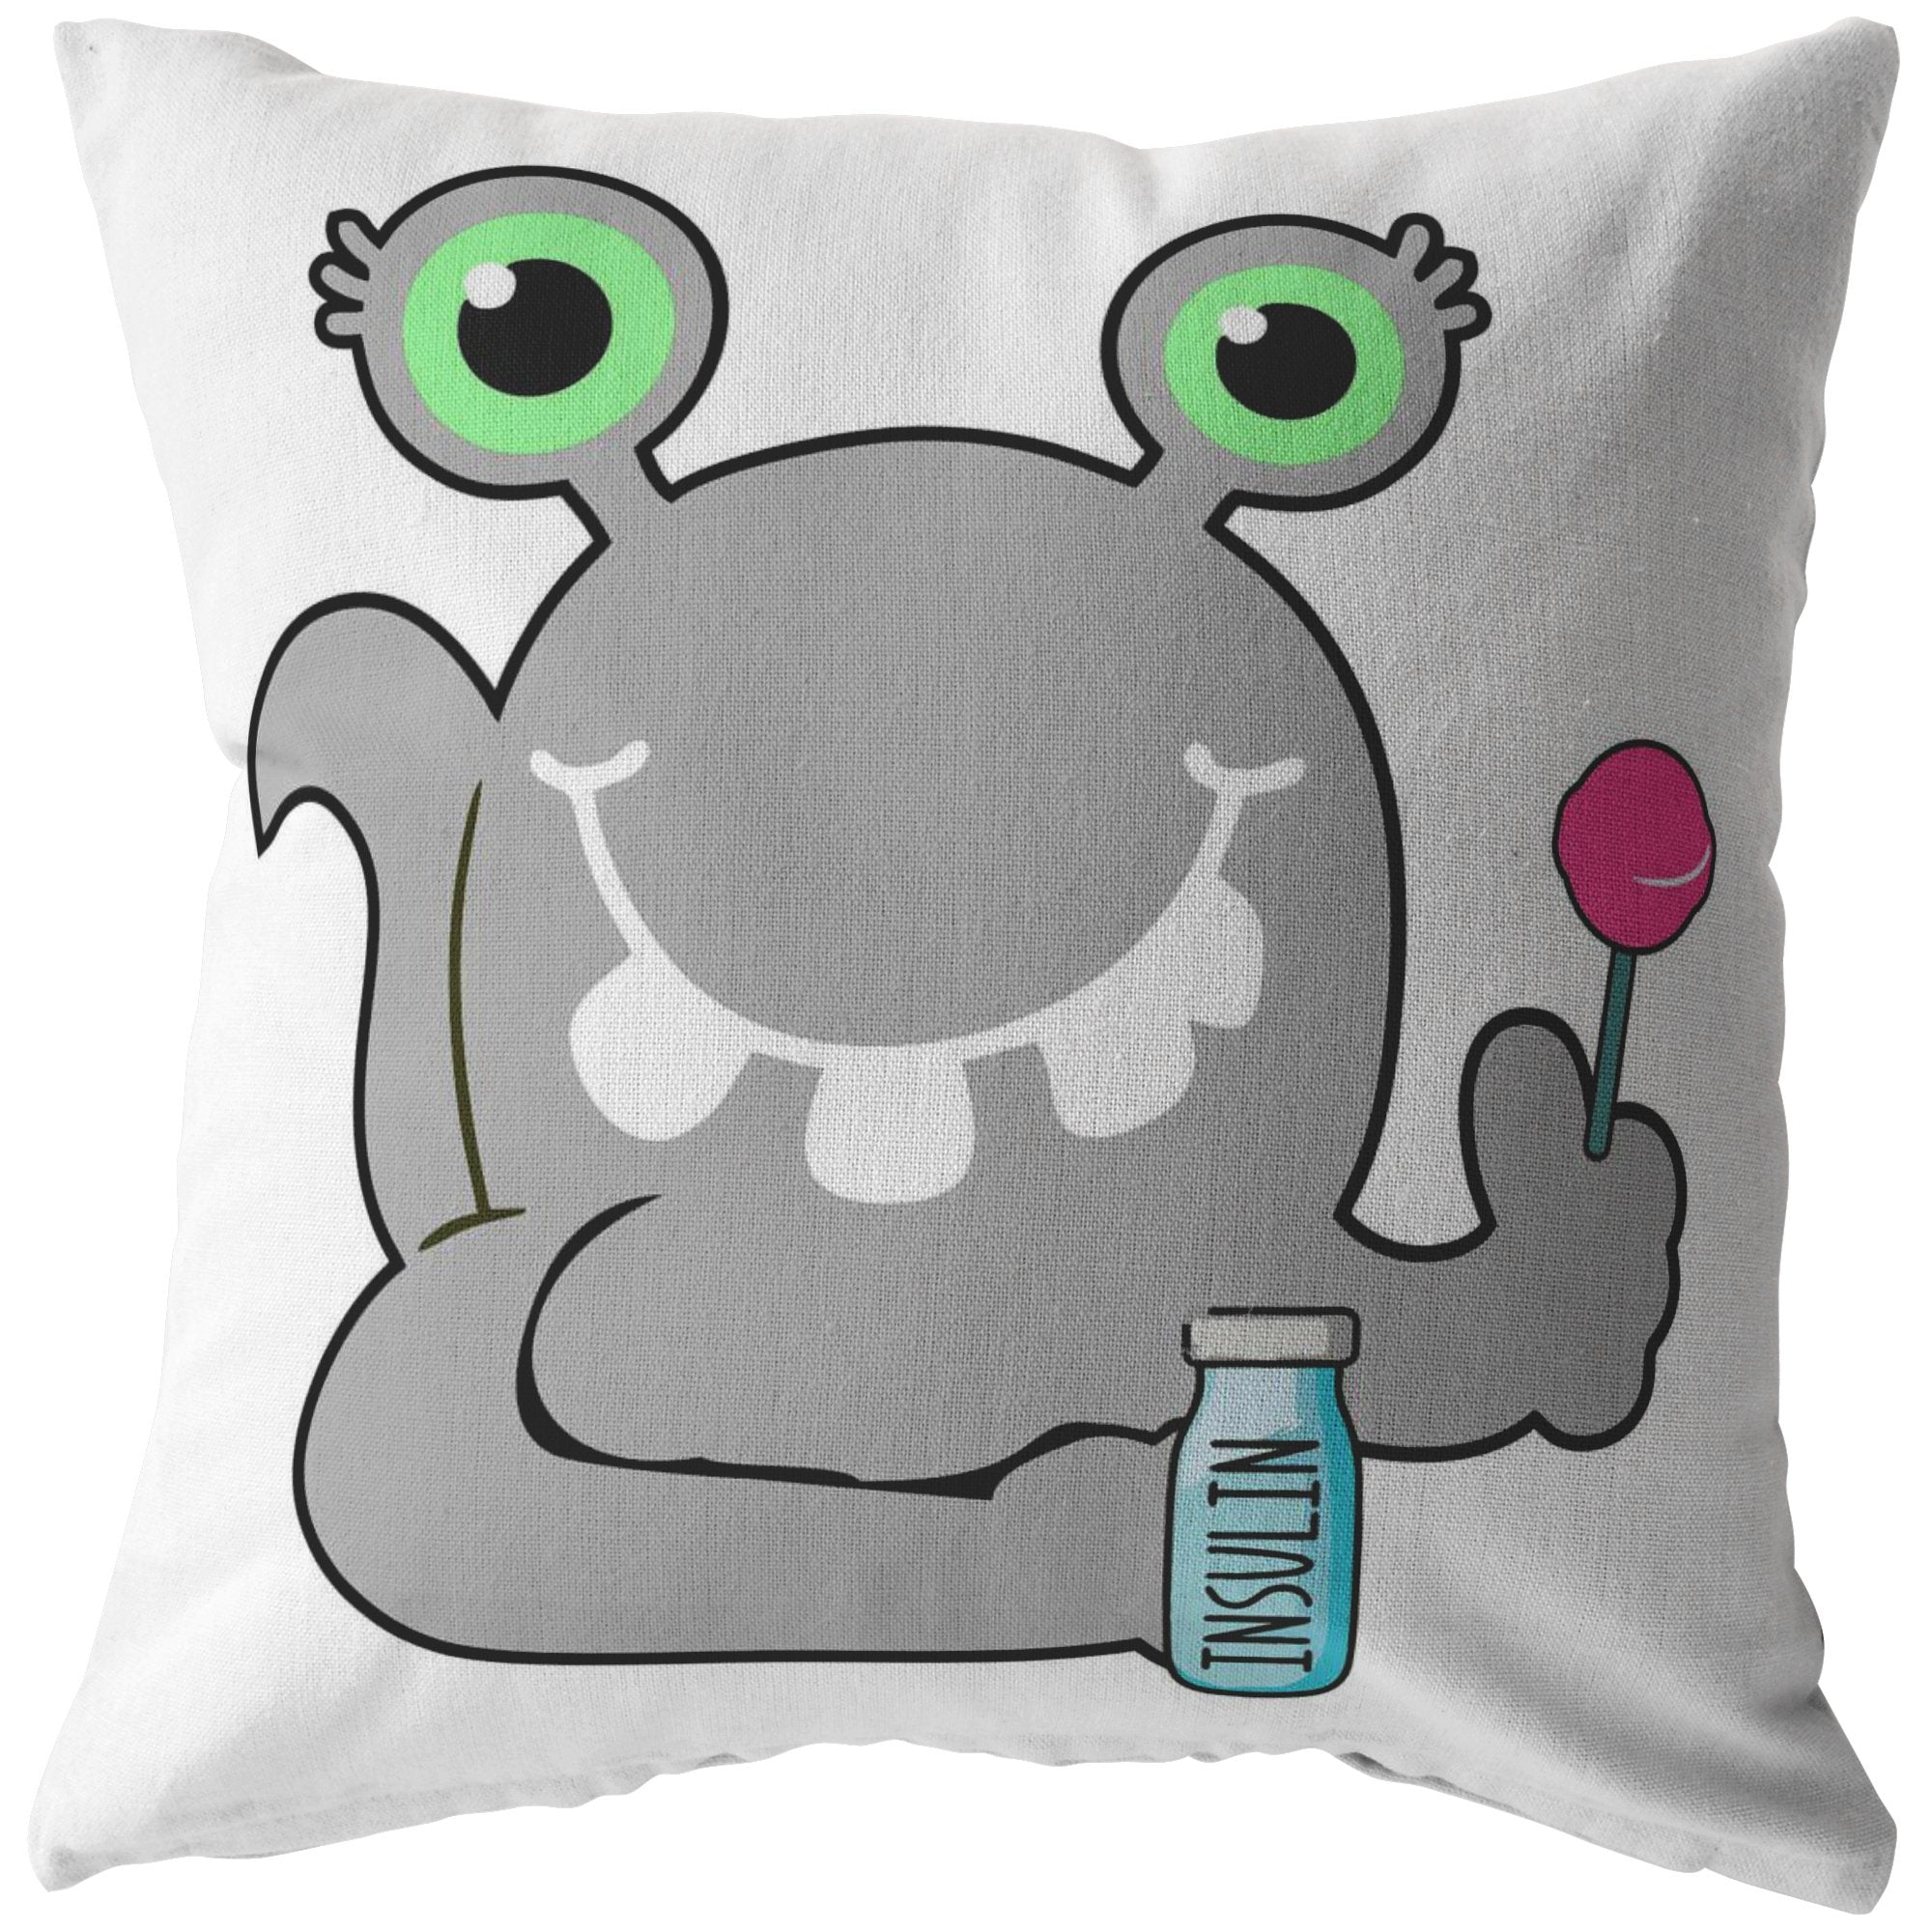 Beets the Diabetes Monster Pillow